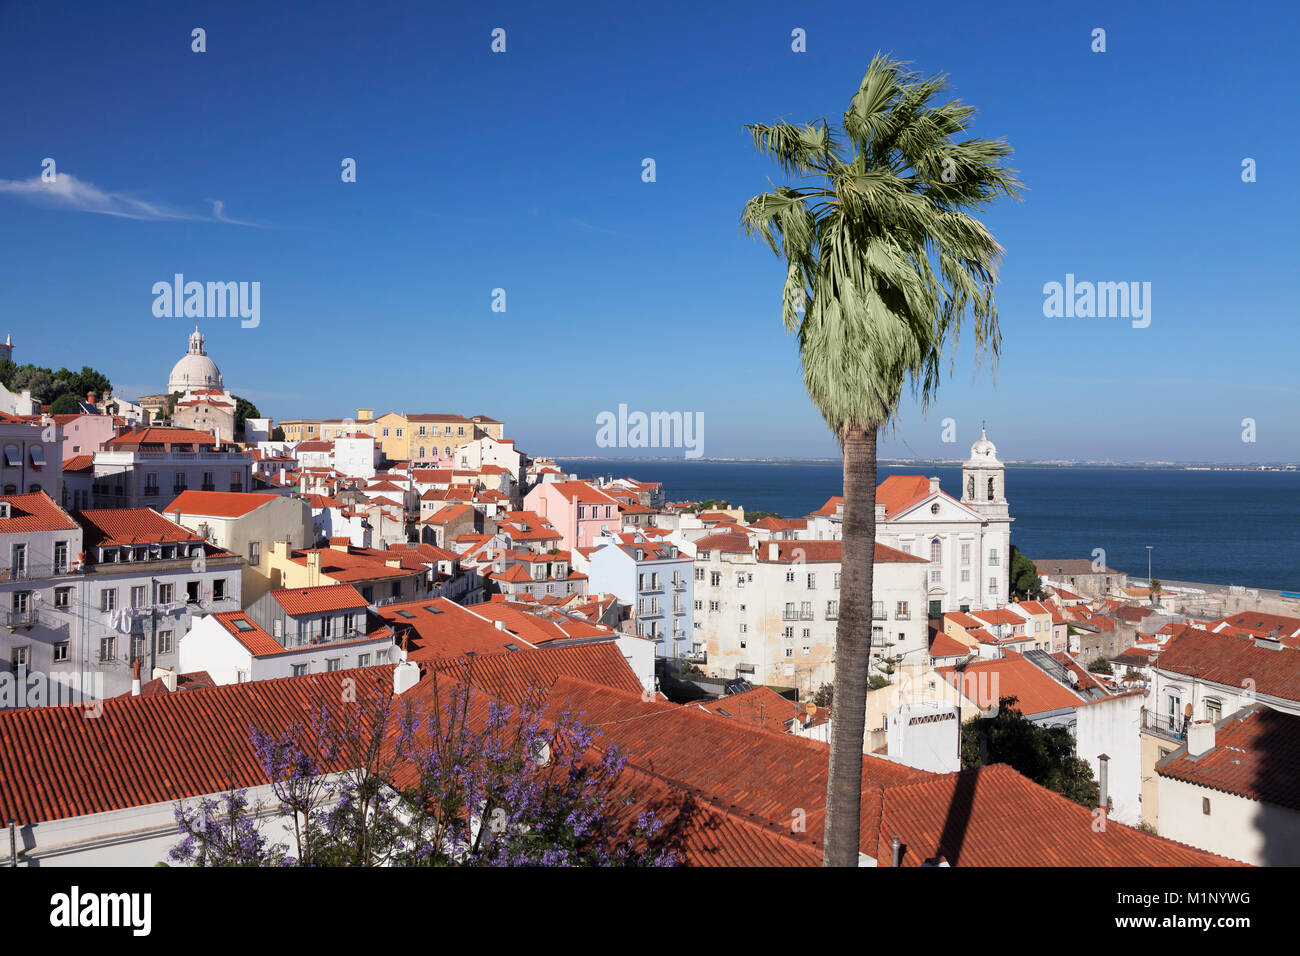 View from Santa Luzia viewpoint over Alfama district to Tejo River, Lisbon, Portugal, Europe - Stock Image